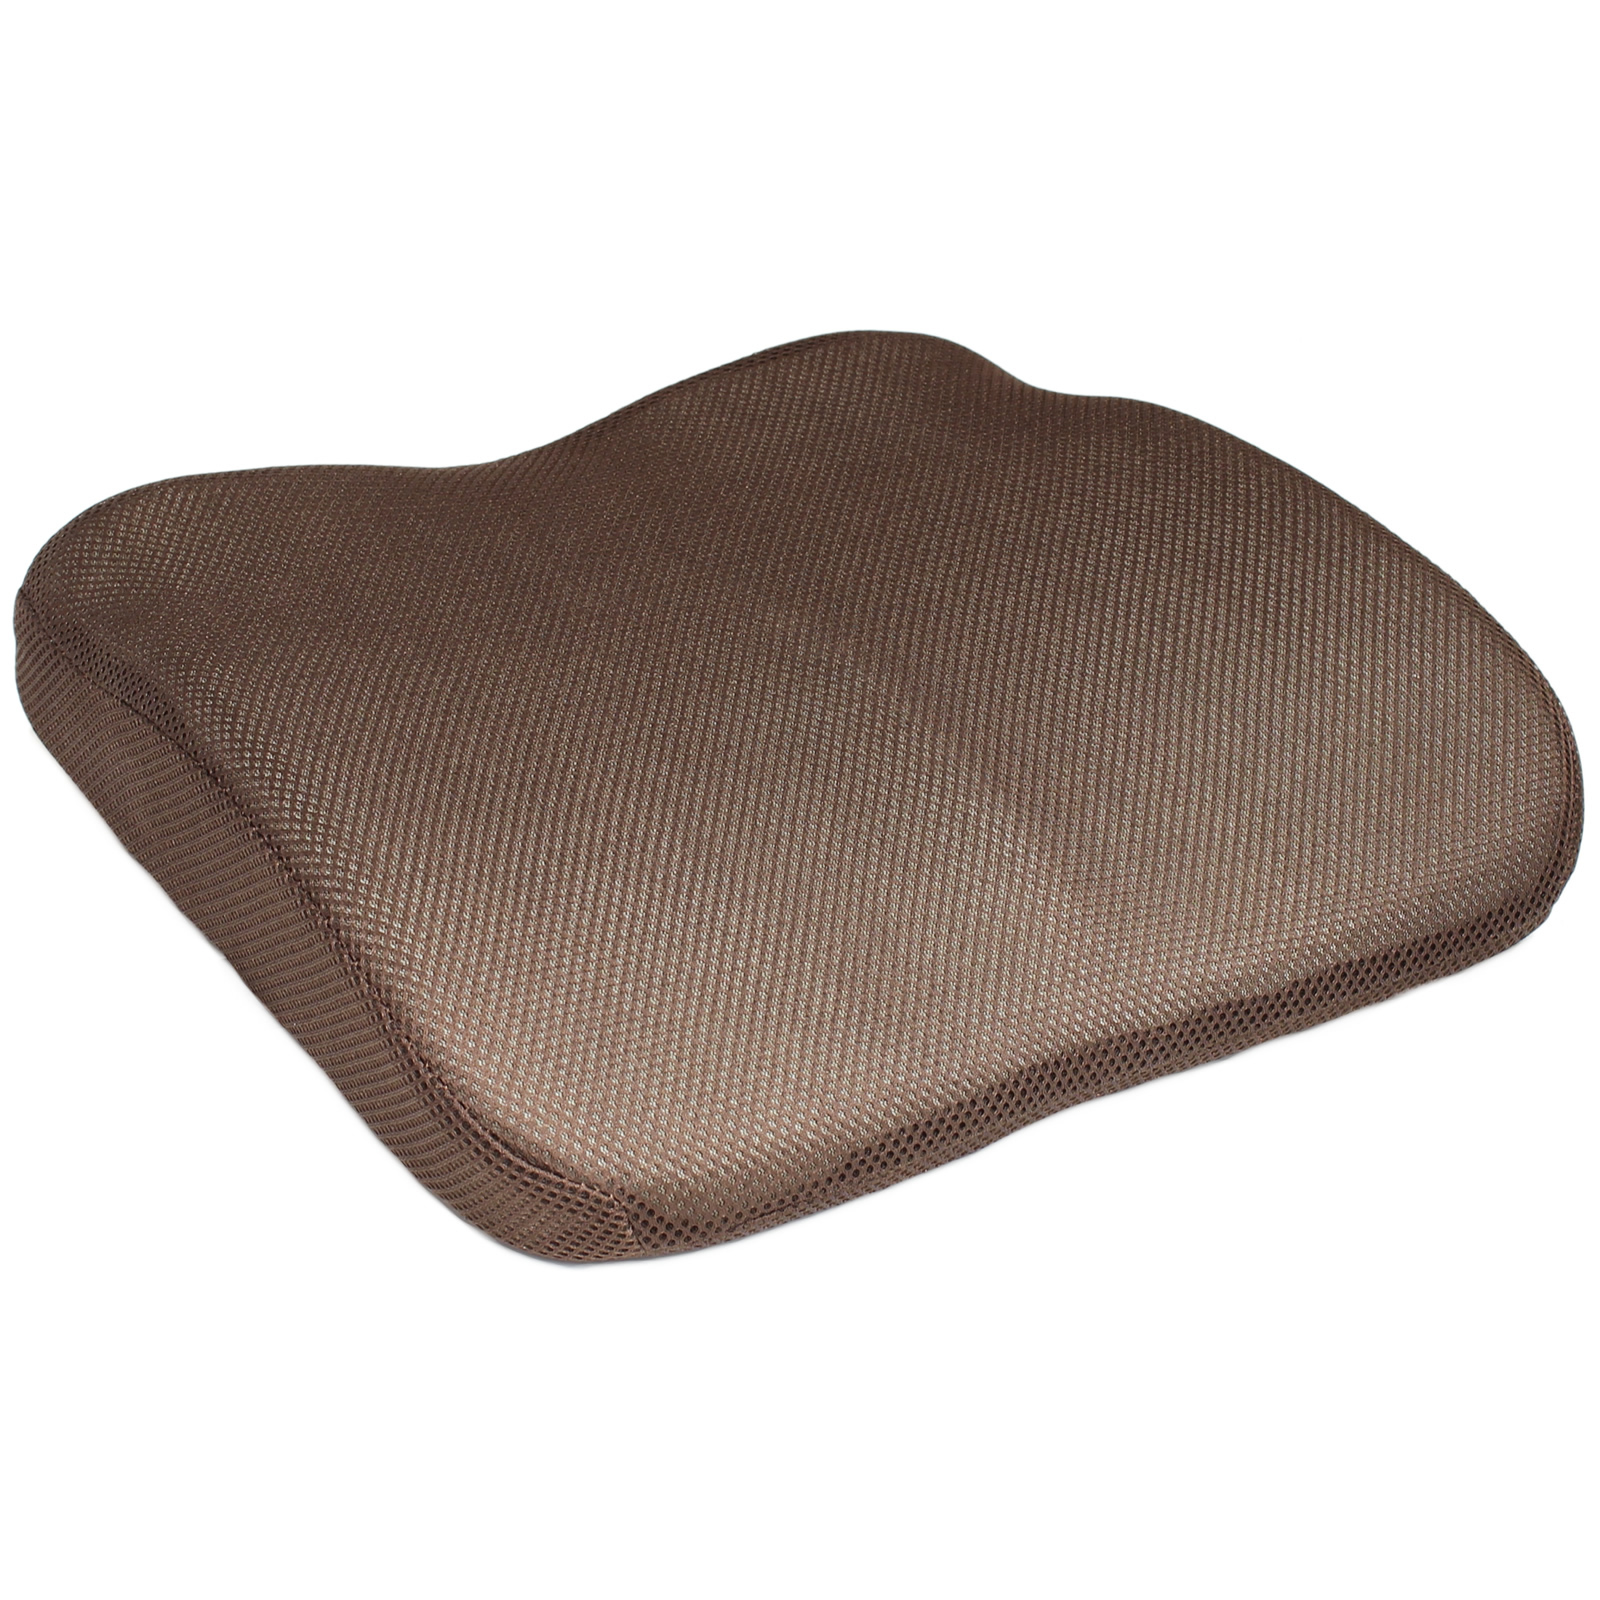 brown mesh memory foam car van lower back seat base cushion lumbar support wedge ebay. Black Bedroom Furniture Sets. Home Design Ideas